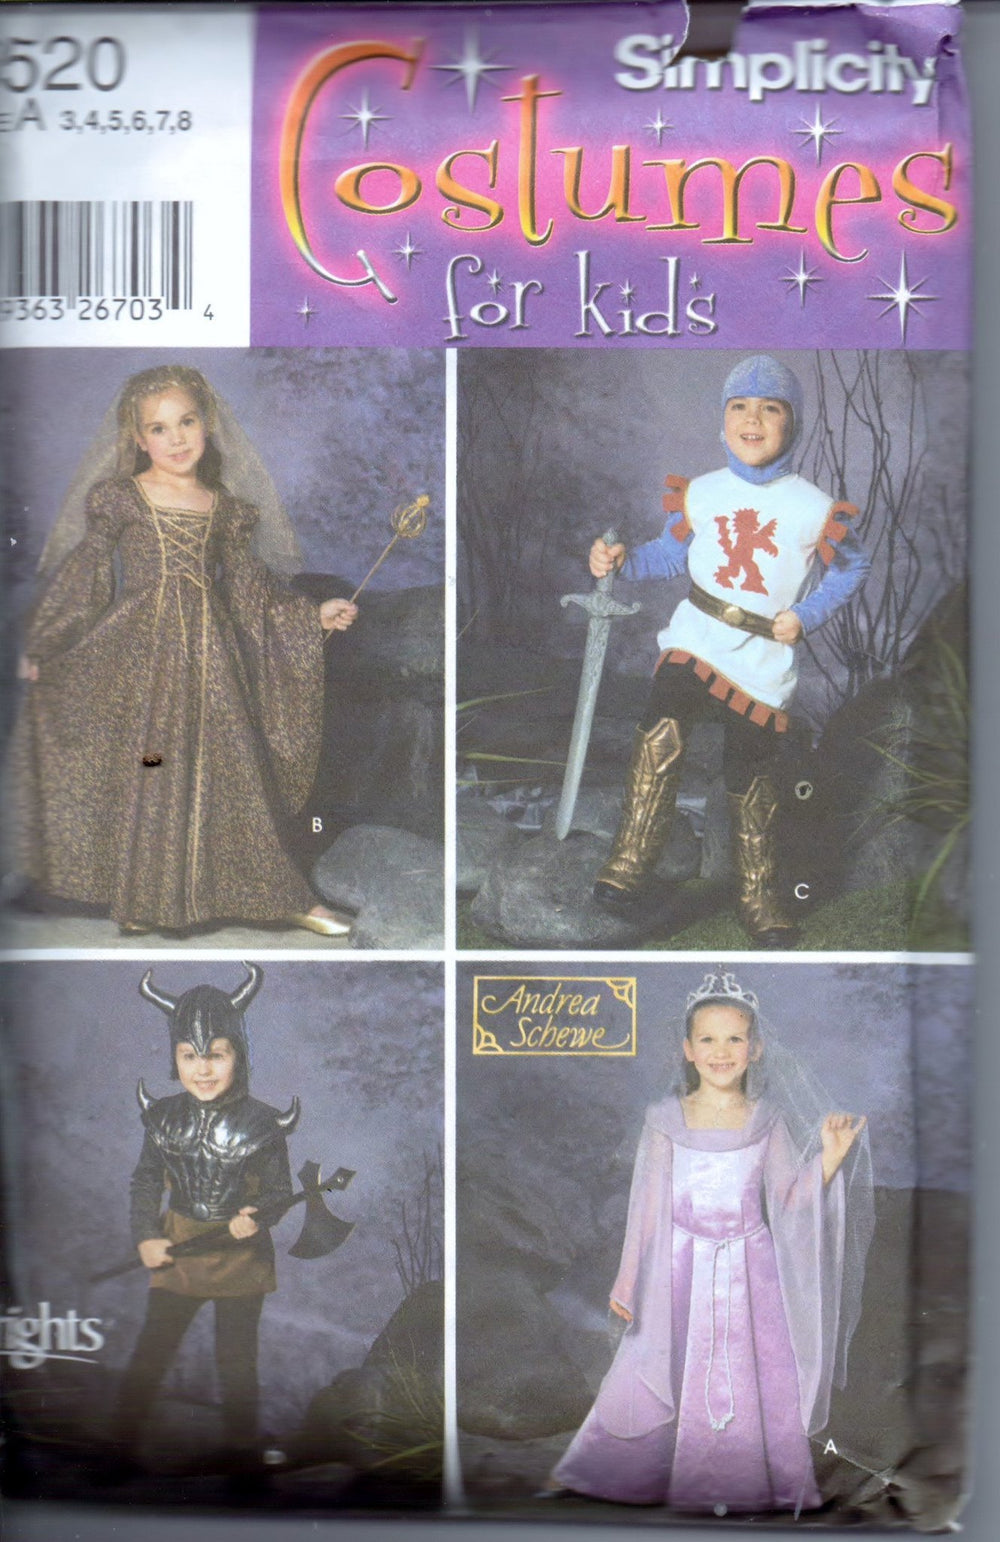 Simplicity 5520 Childrens Halloween Costume Pattern Medieval Princess Knight Renaissance Boys Girls - VintageStitching - Vintage Sewing Patterns